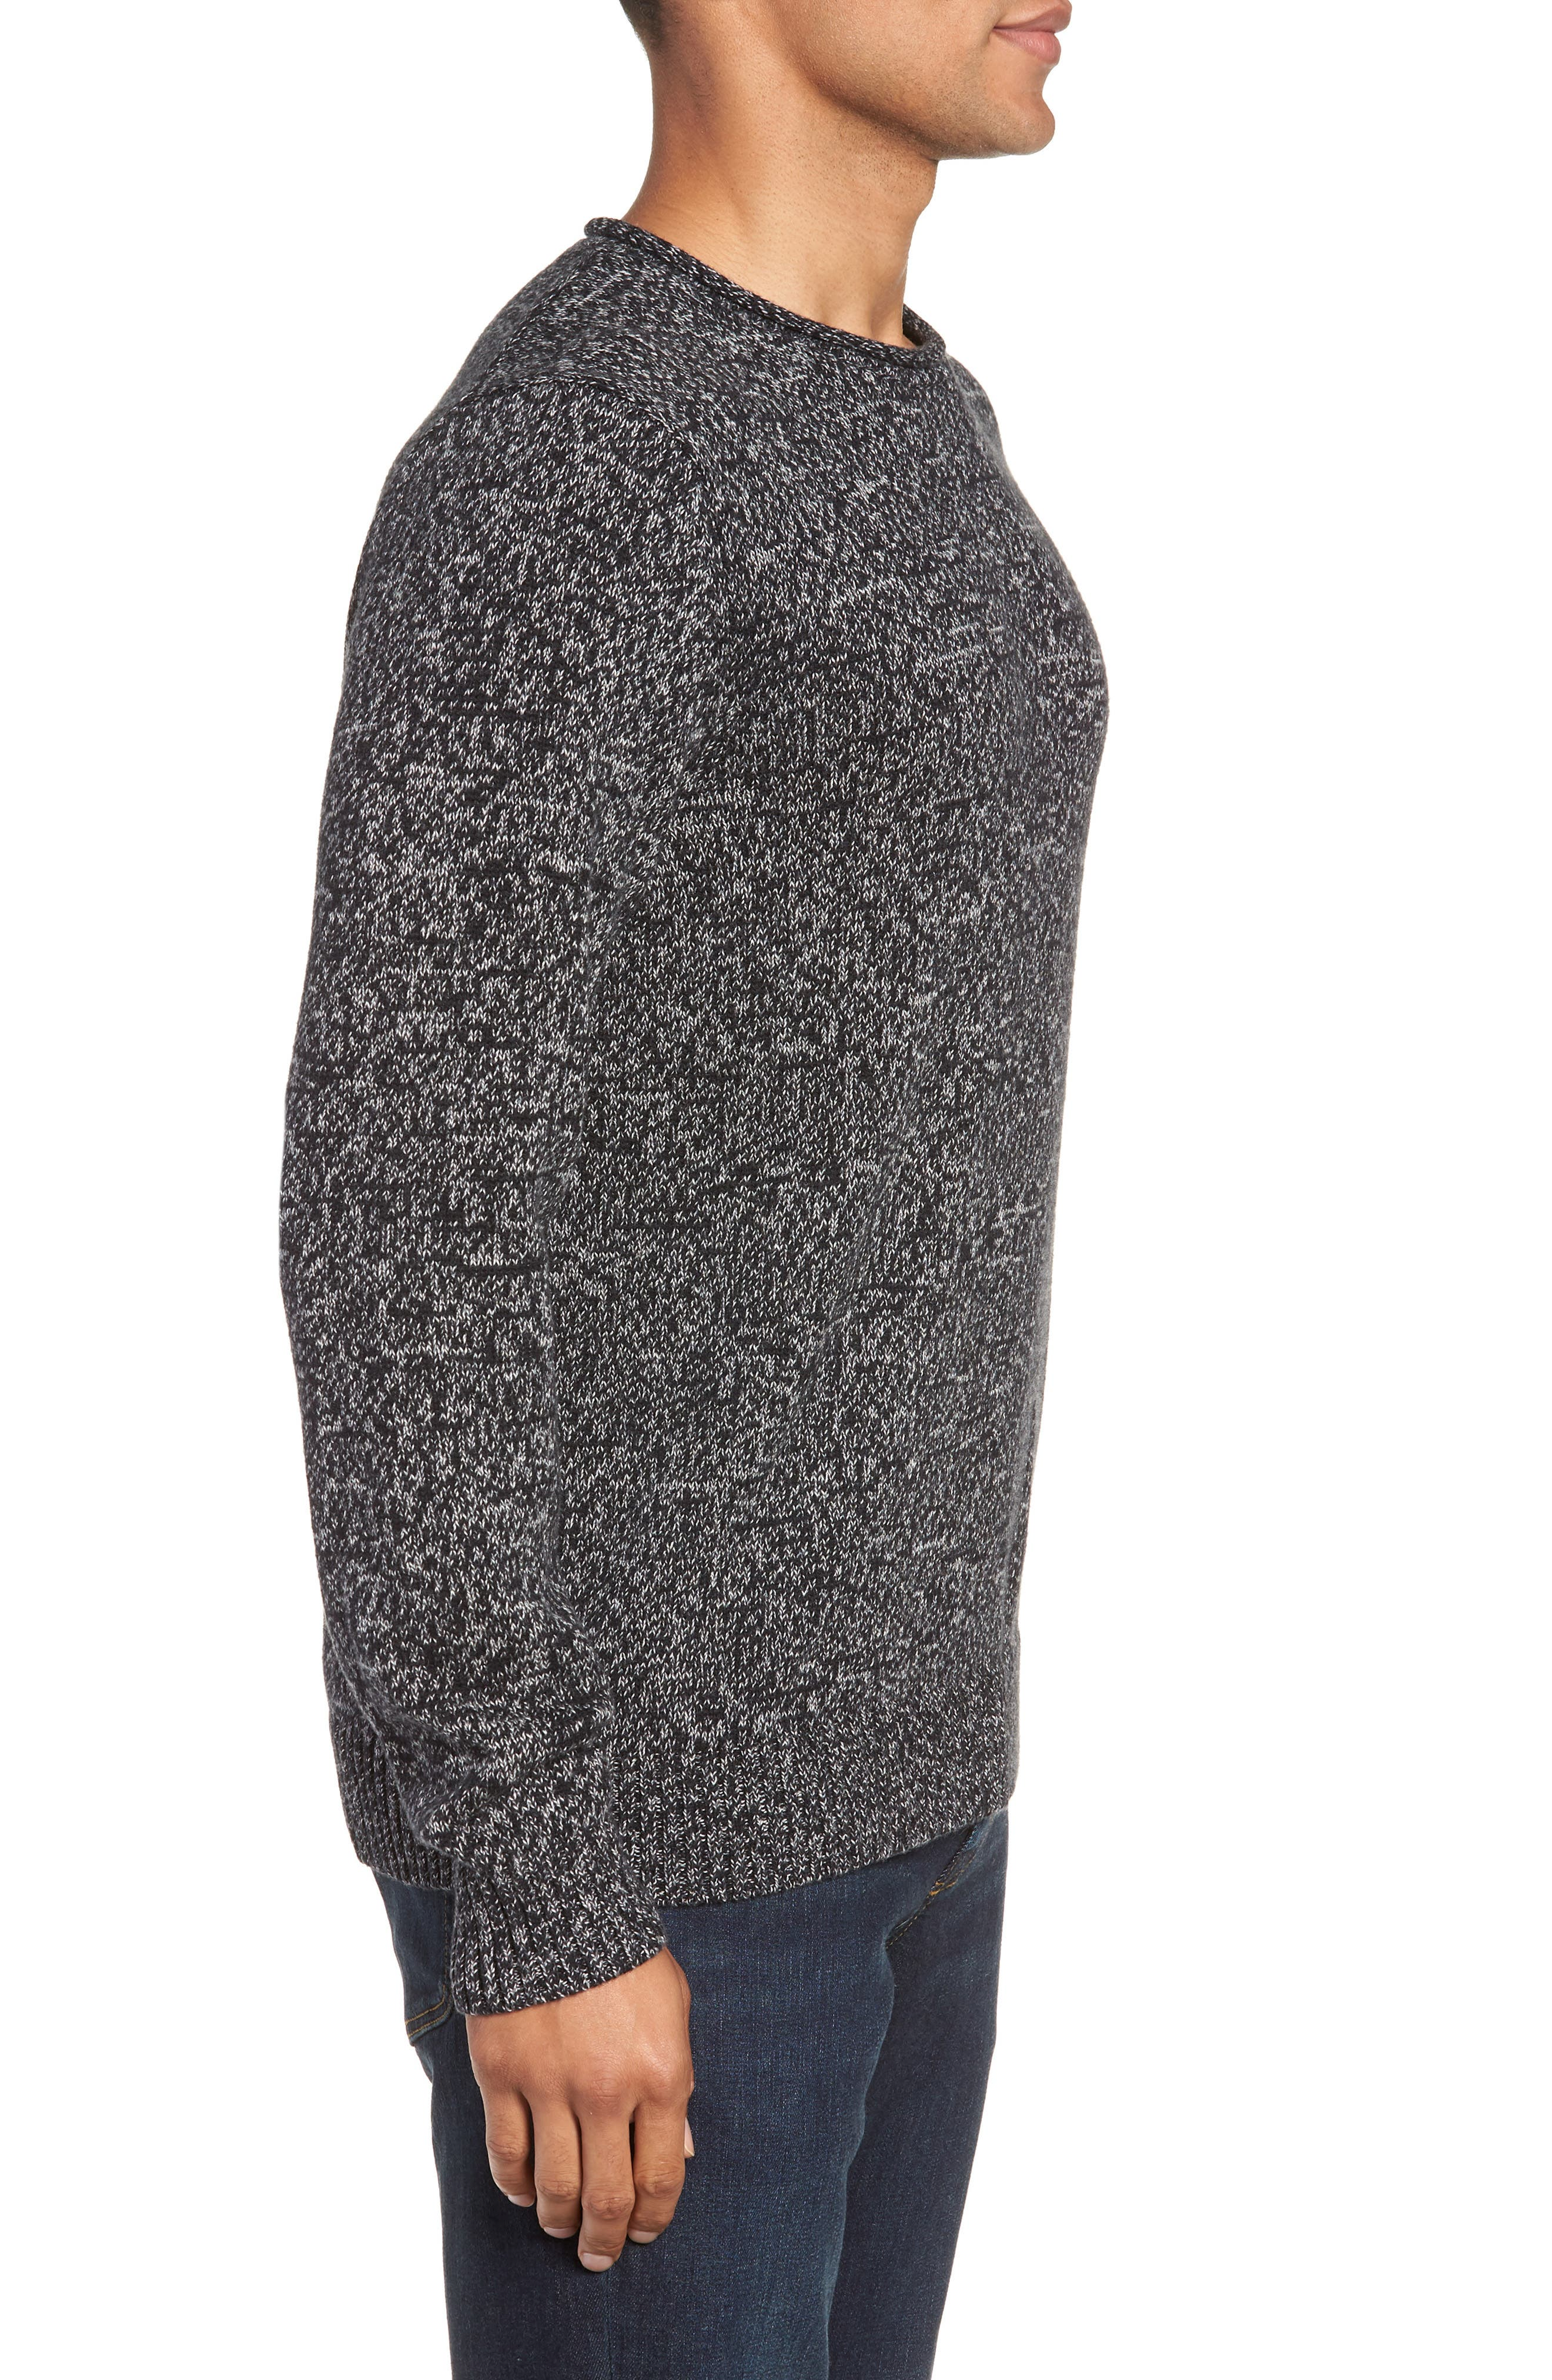 Marled Cotton & Cashmere Roll Neck Sweater,                             Alternate thumbnail 3, color,                             BLACK CAVIAR MARL